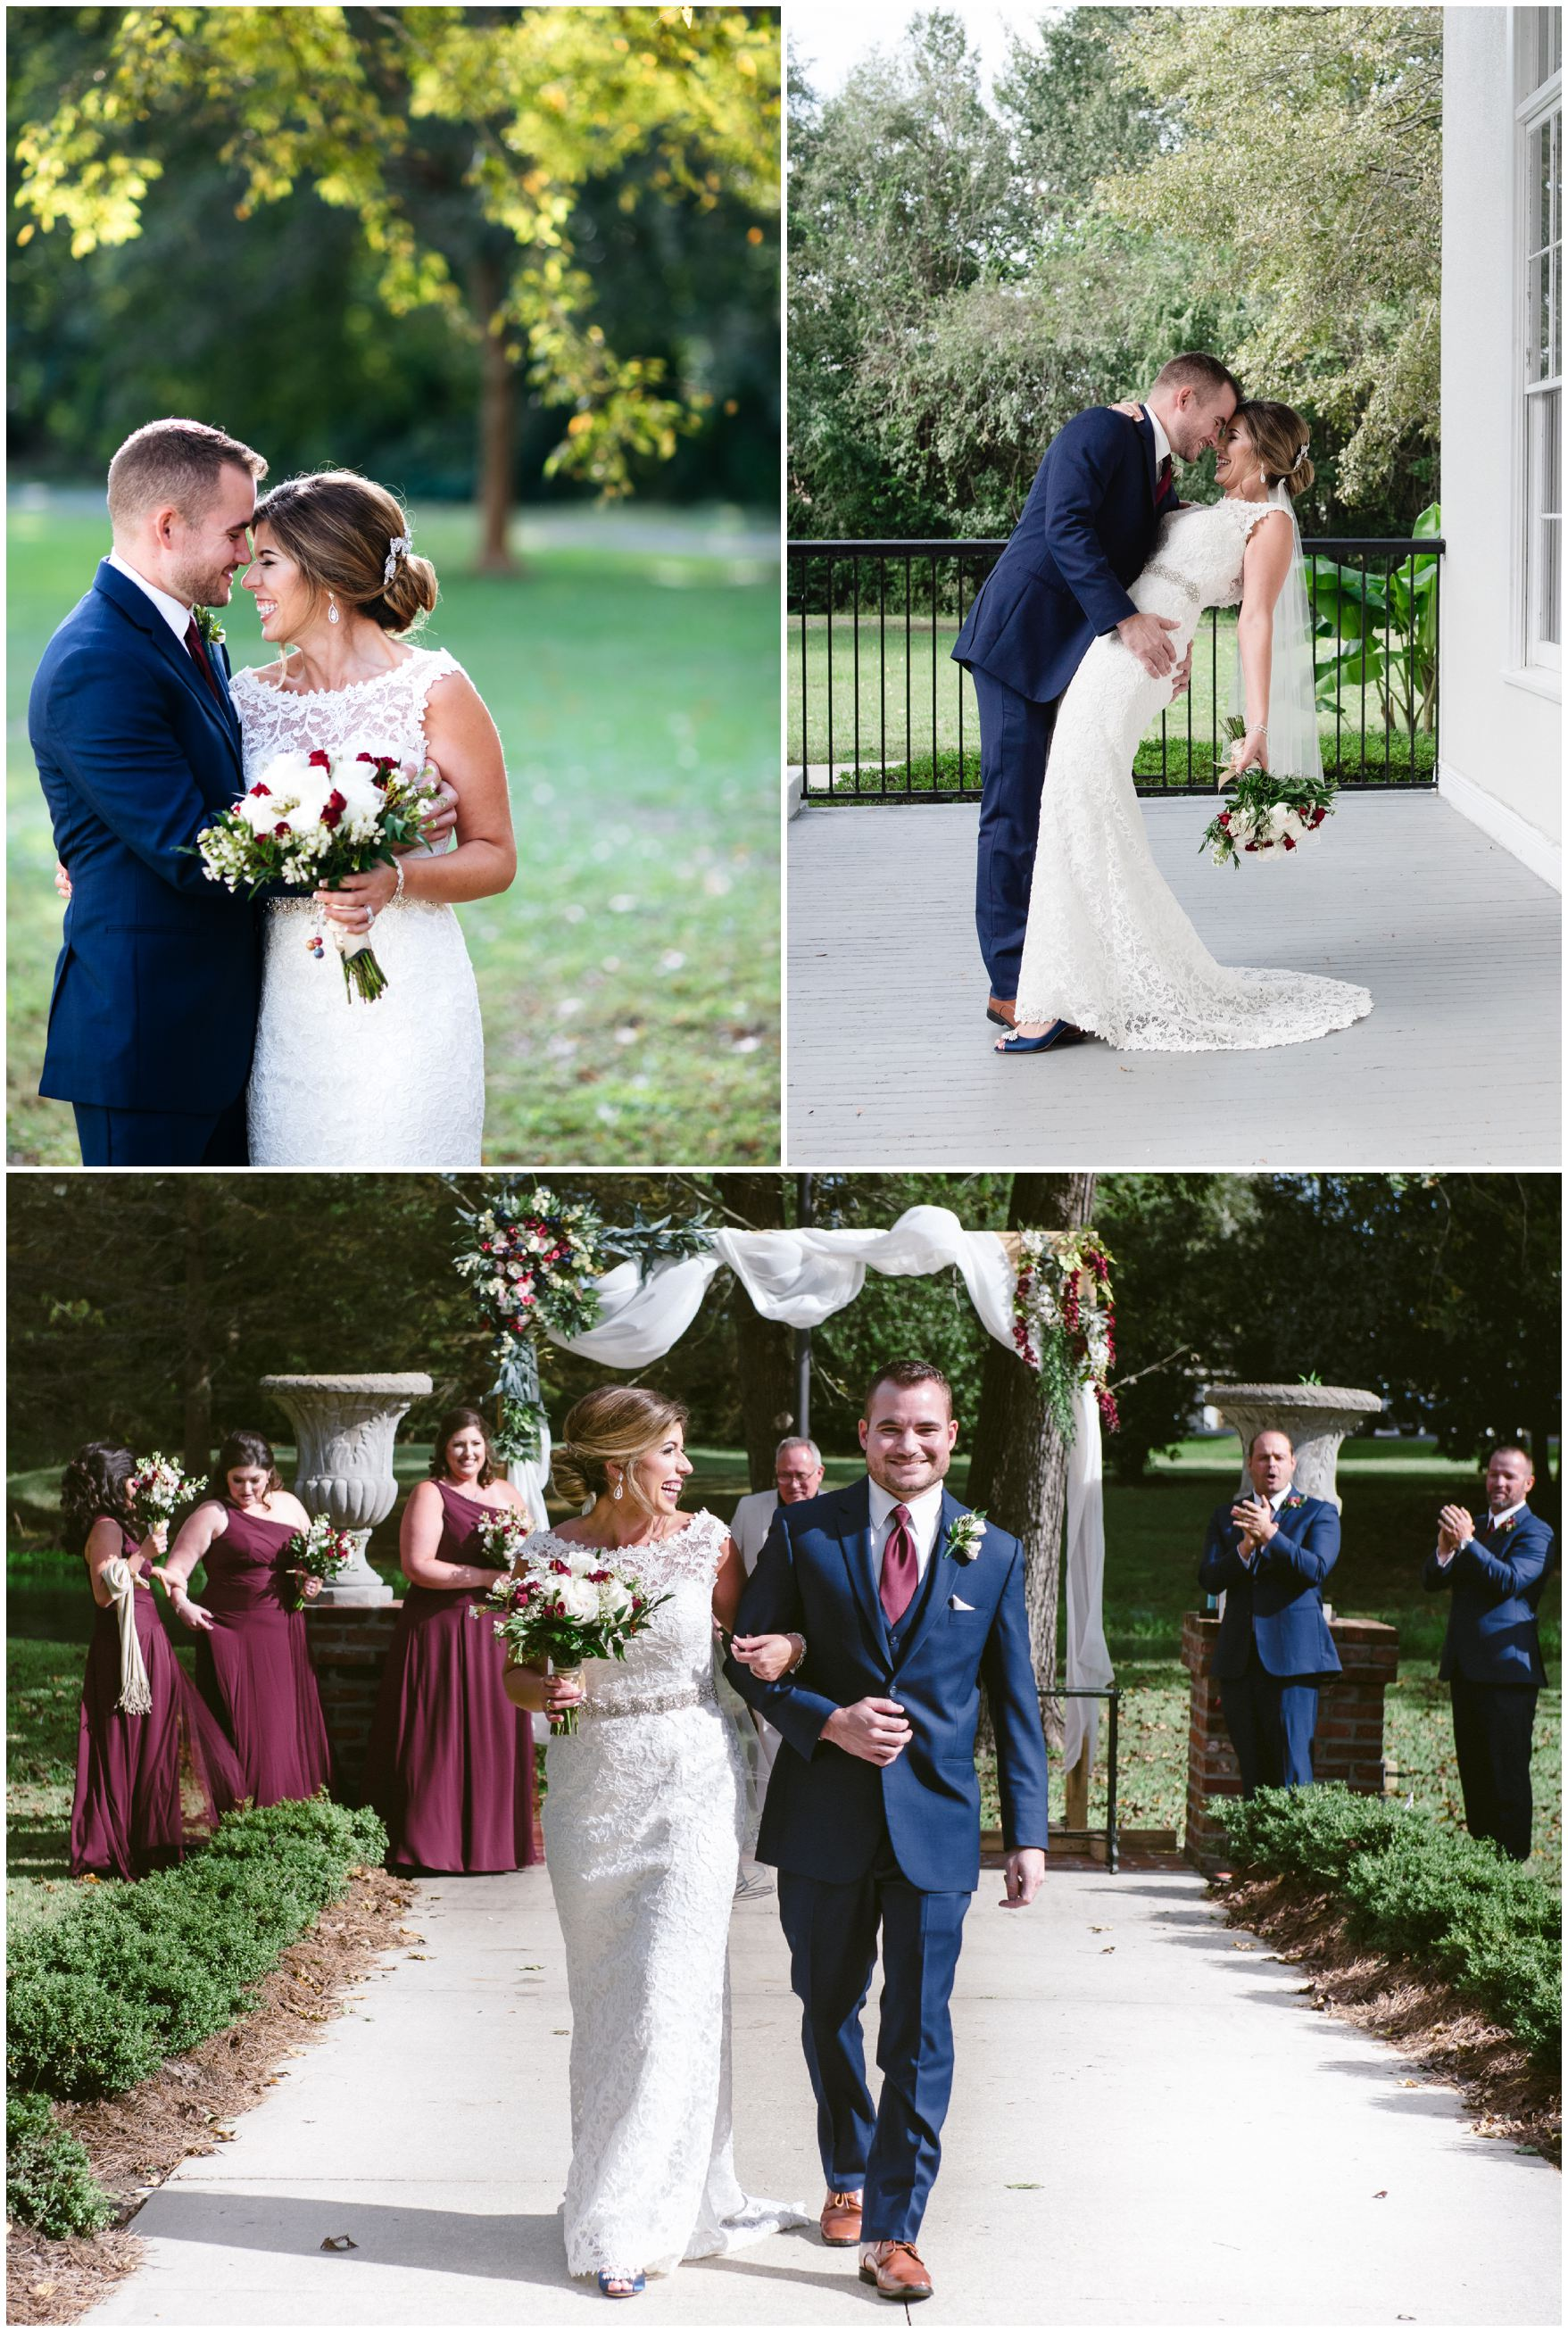 """Jamey was incredible! Our photos are breathtaking and she was truly a great addition to our day. She was so gracious and patient with all of our questions. This will be the best investment you make for your wedding day!"" Jodi"